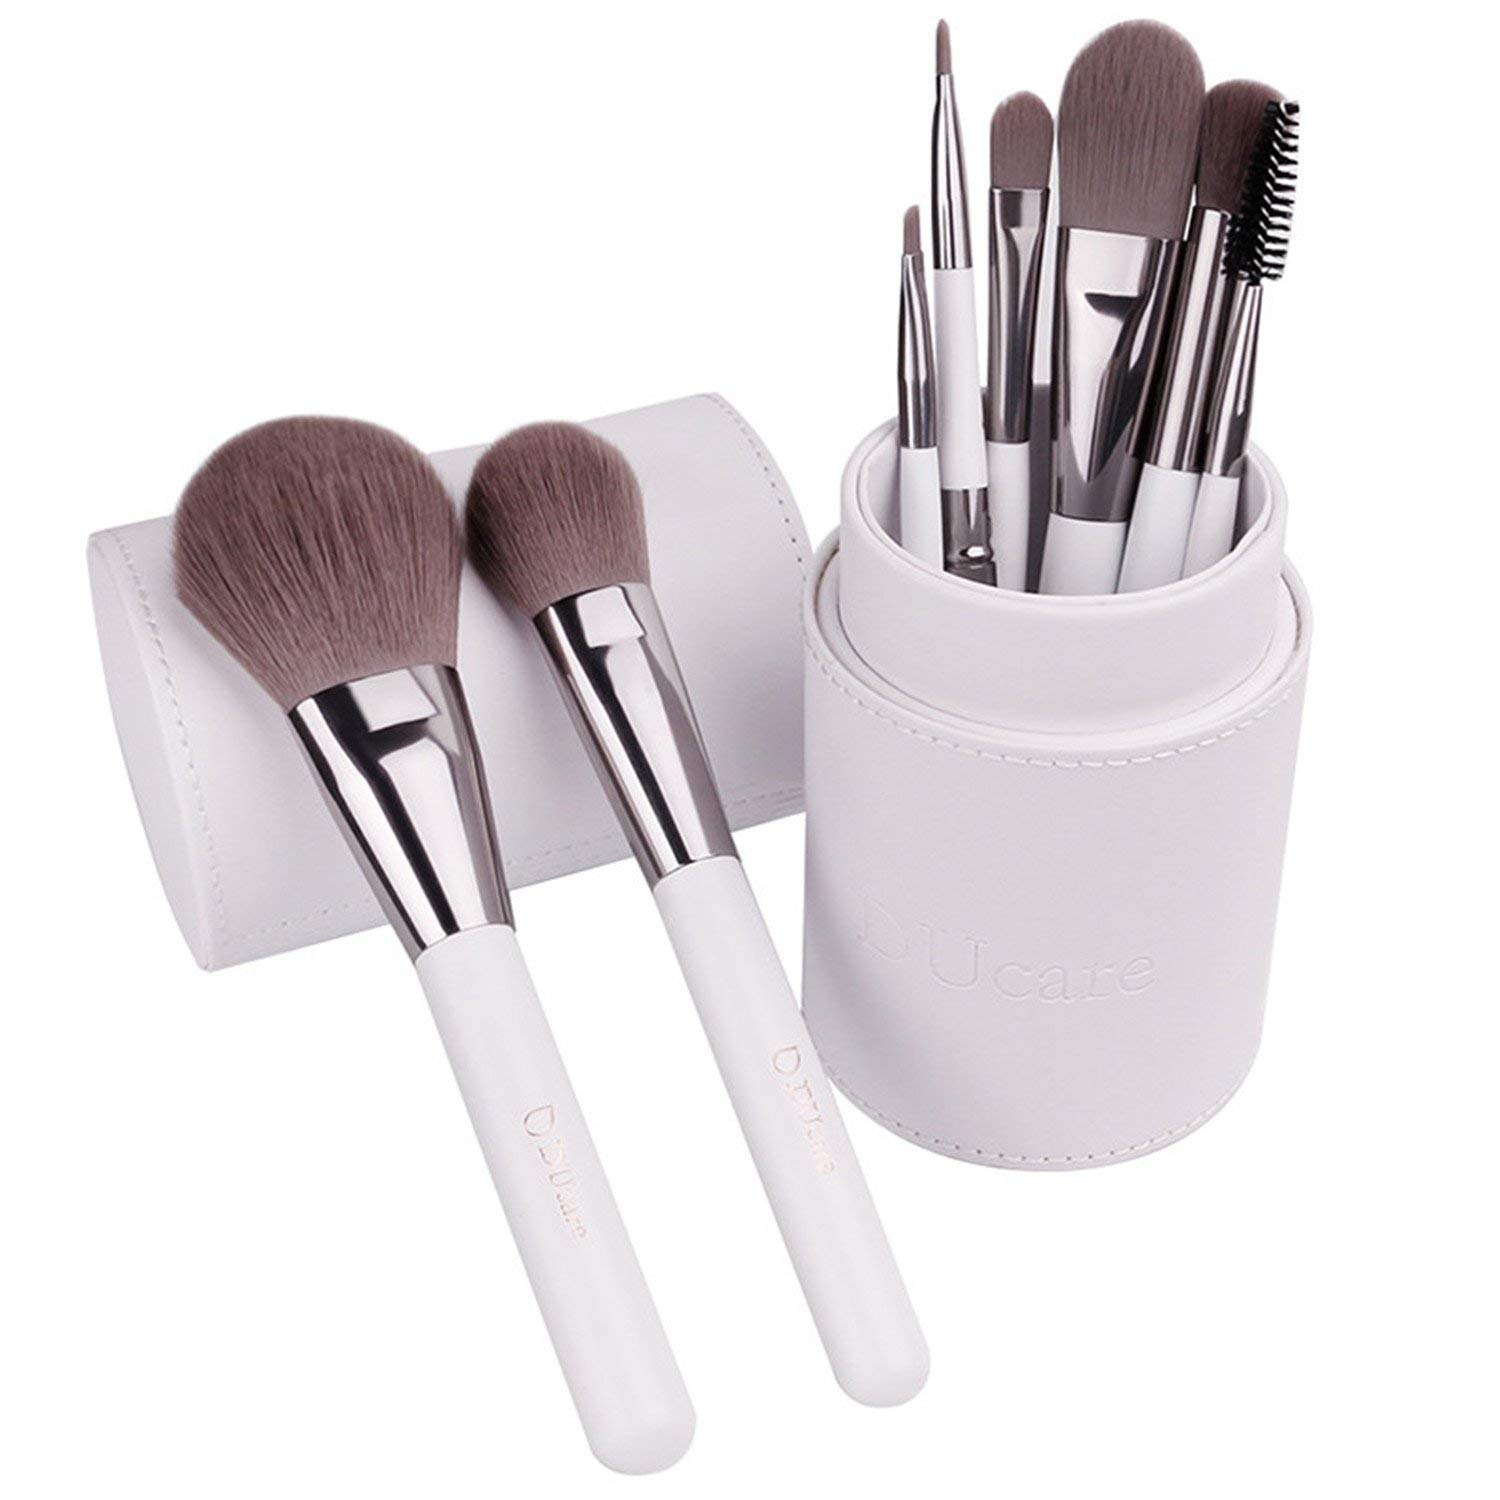 Makeup Brushes Professional Cosmetics Brush Set 8Pcs Top Synthetic Hair With White Cylinder Brushes Set